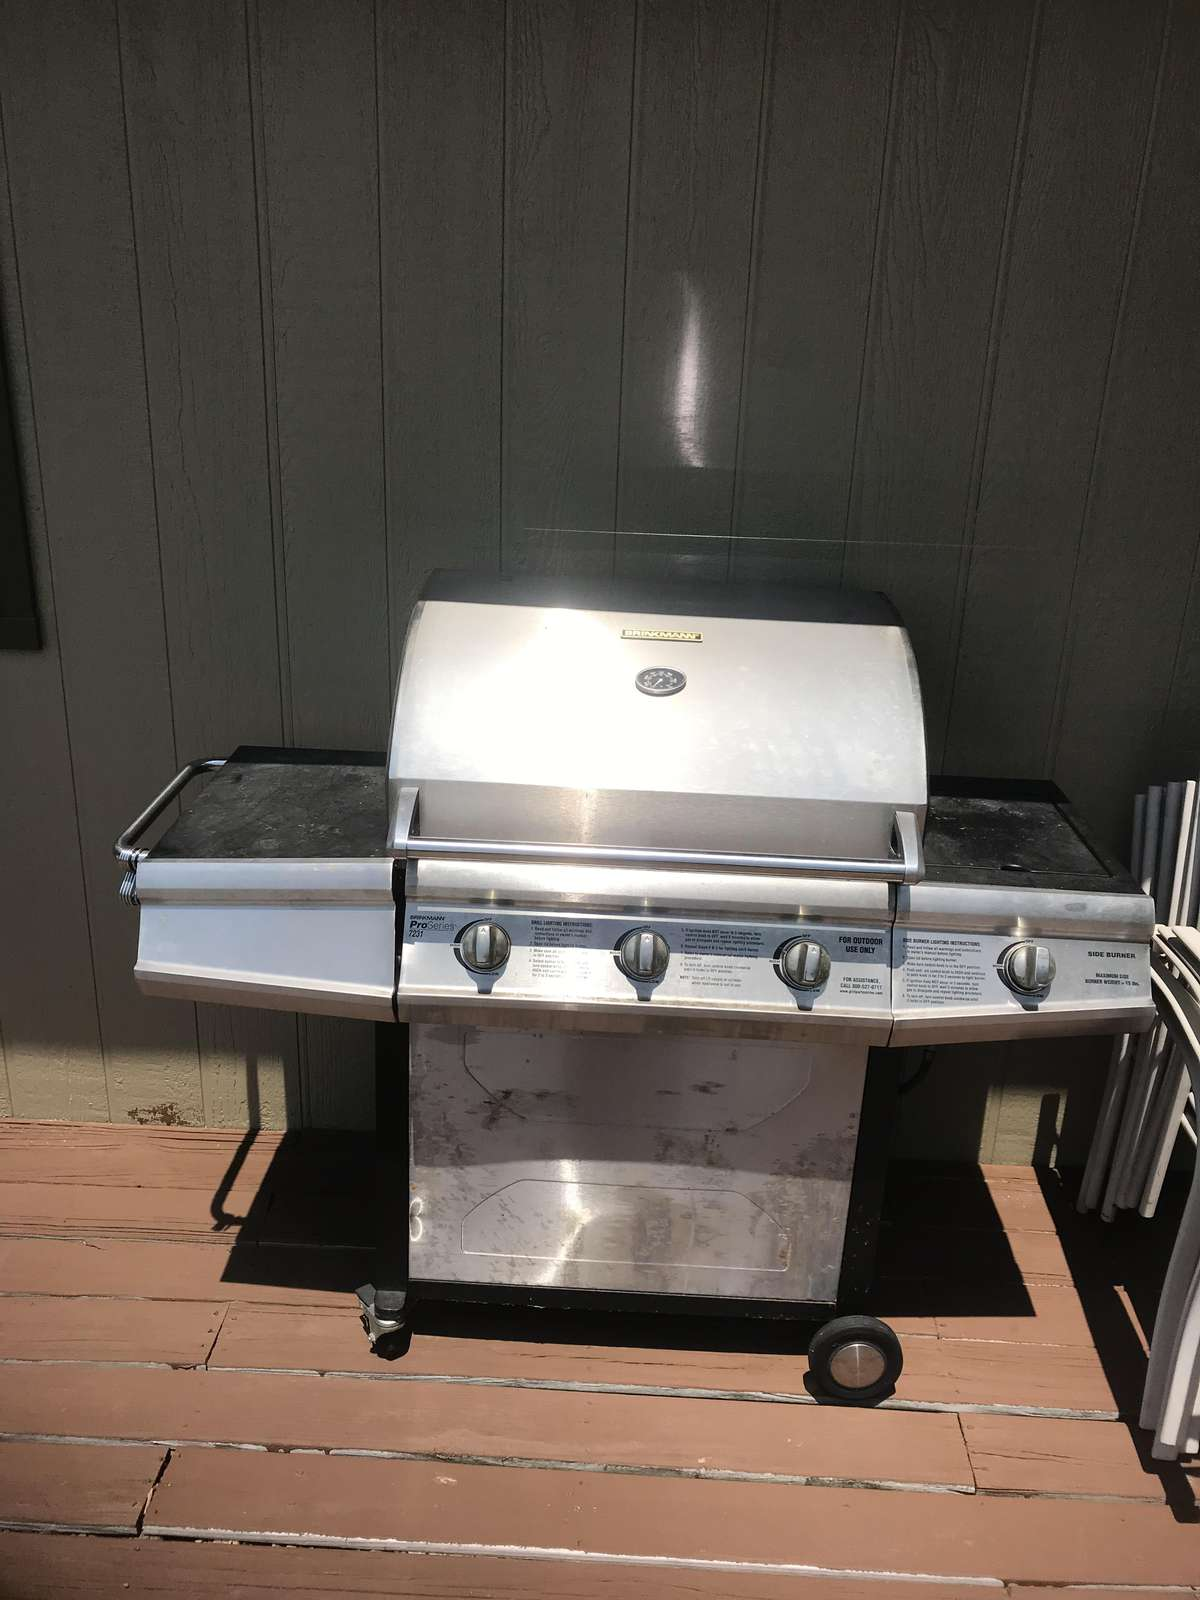 Gas grill to take care of all of the Bass your going to bring in! Or keep it simple with hamburgers and tube steaks!